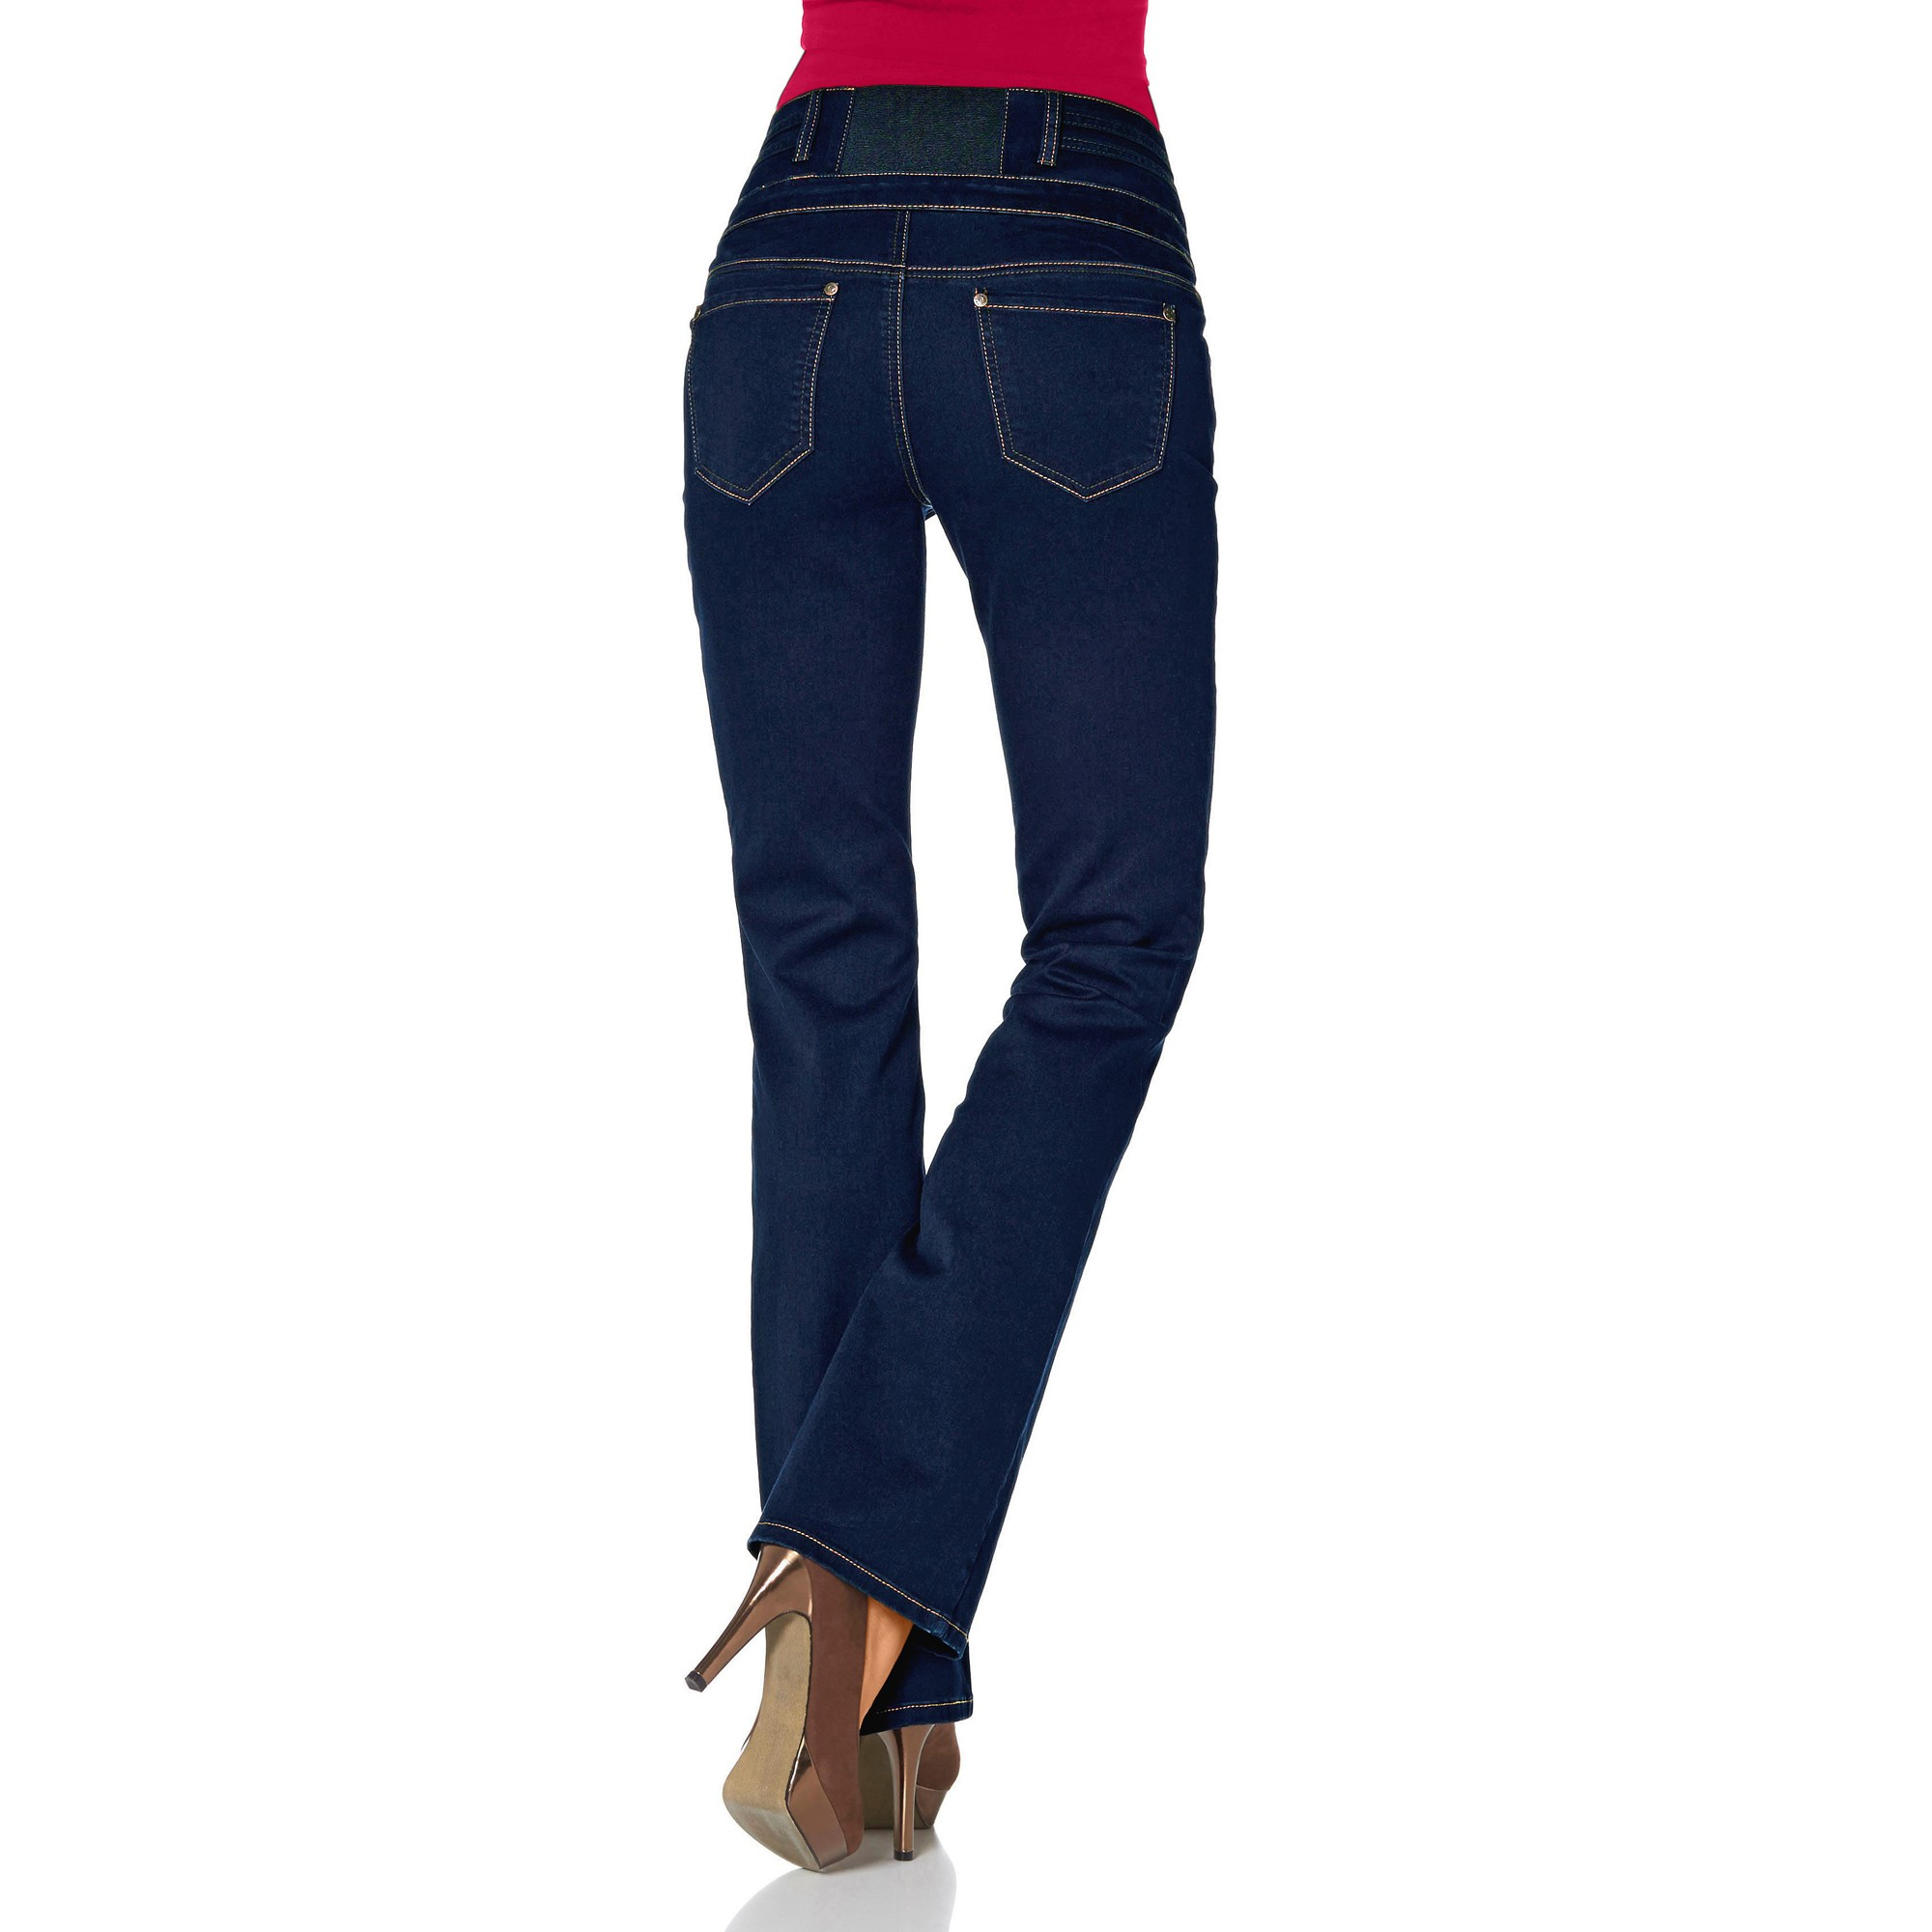 Jean taille haute bootcut petite stature blancheporte for Porte petite taille